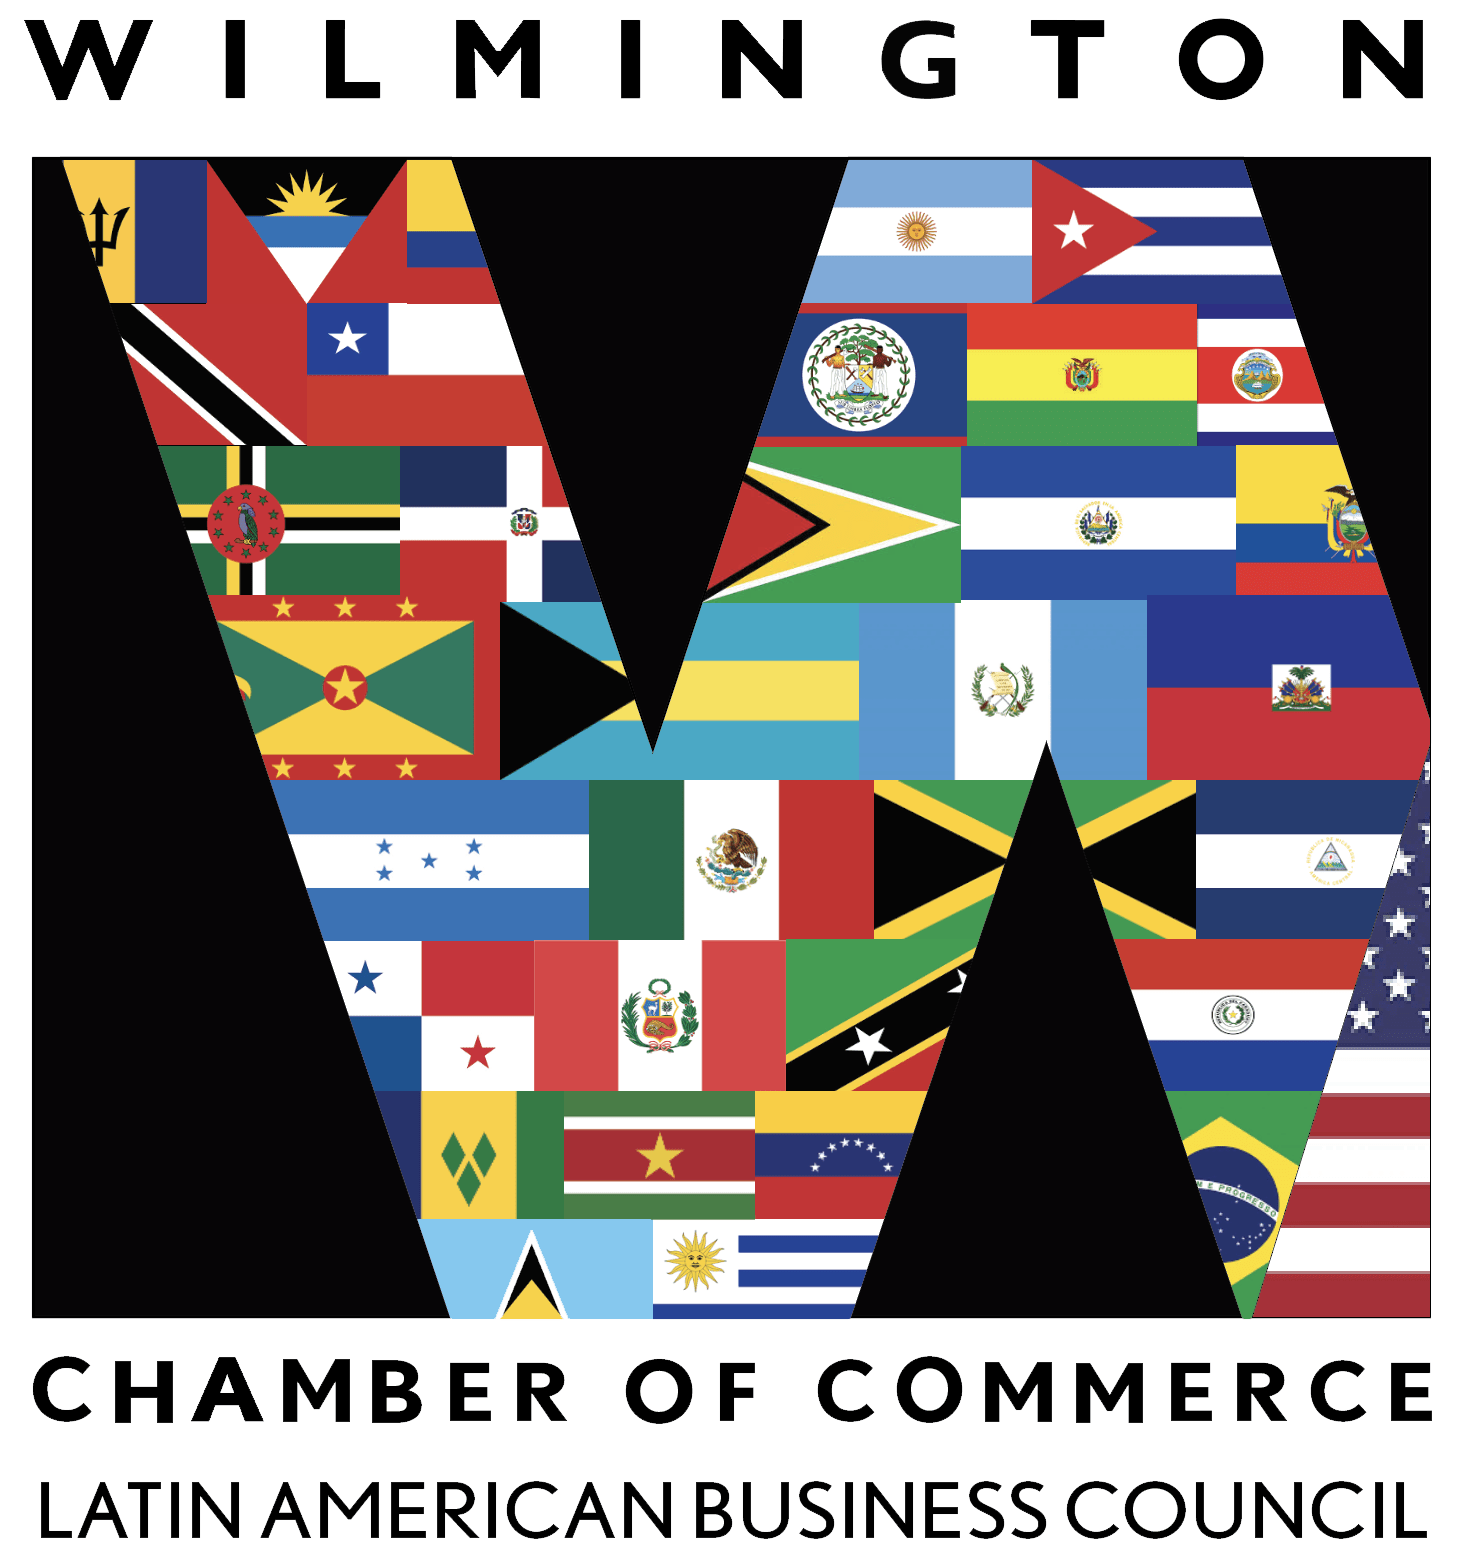 wilmington-chamber-latin-american-business-council-logo.png